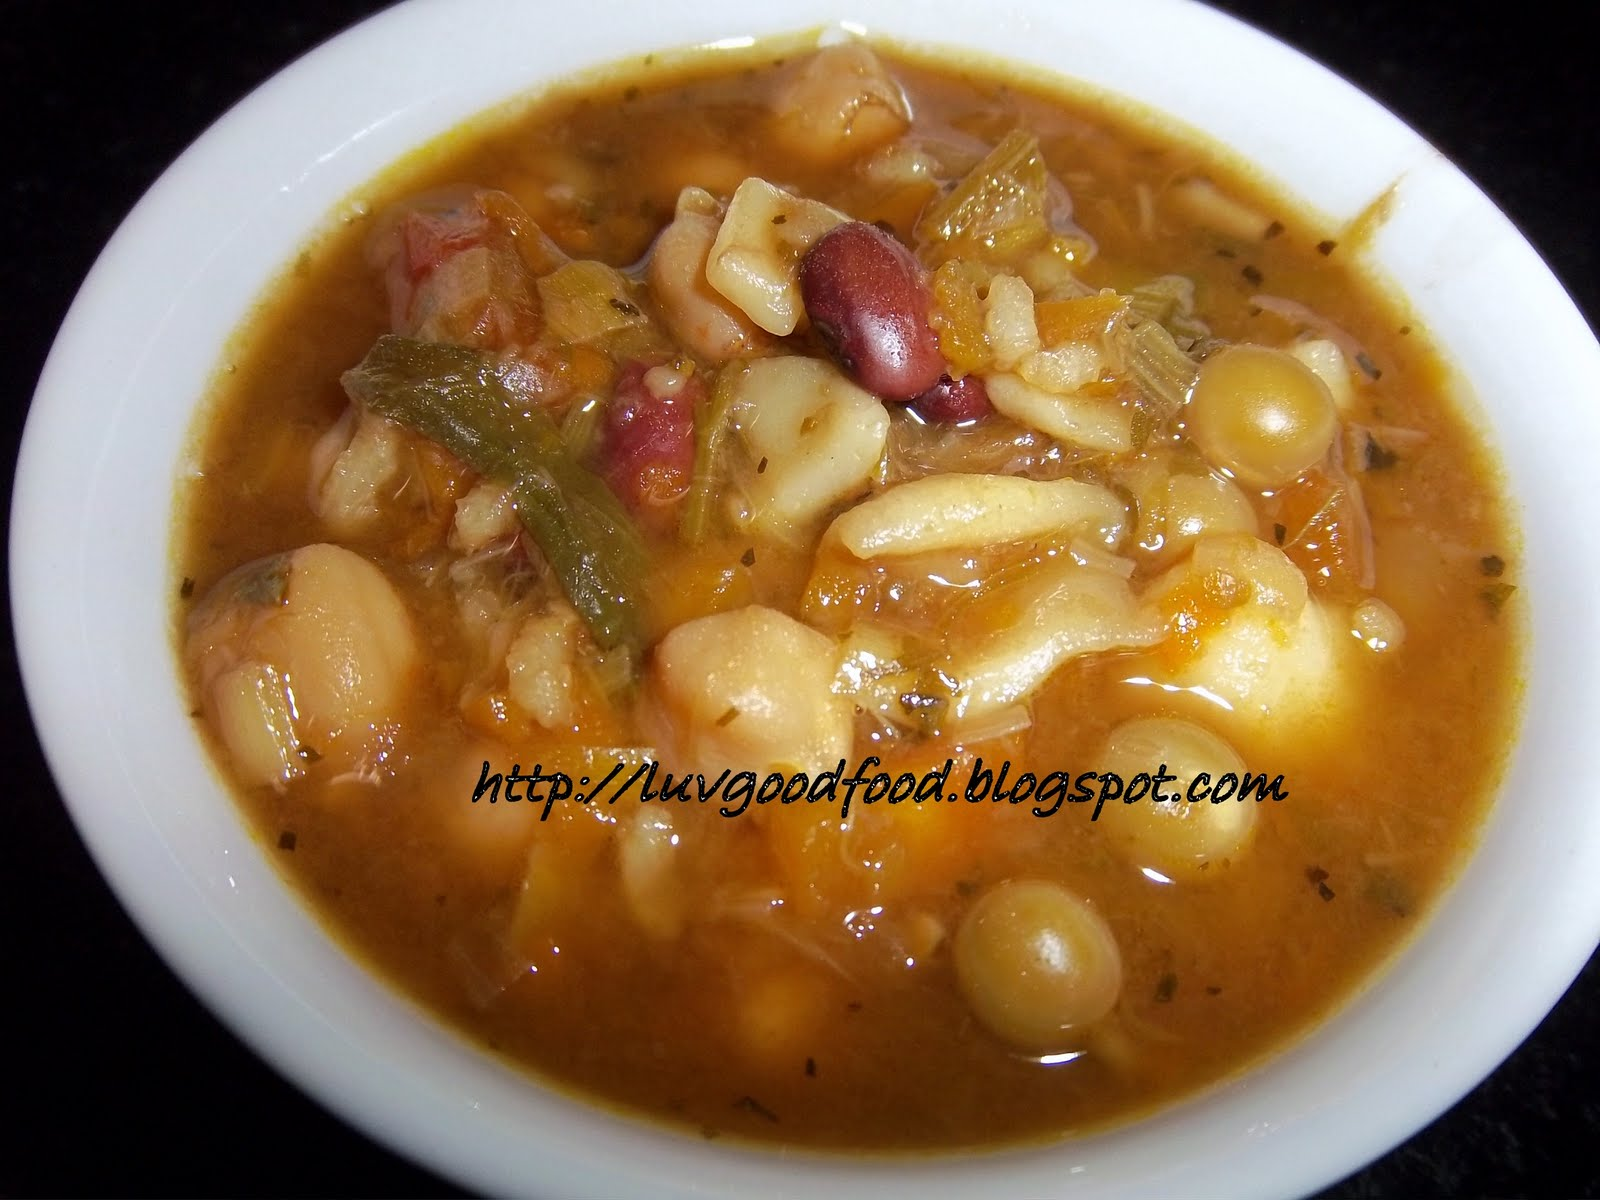 My experiments with food: Minestrone soup